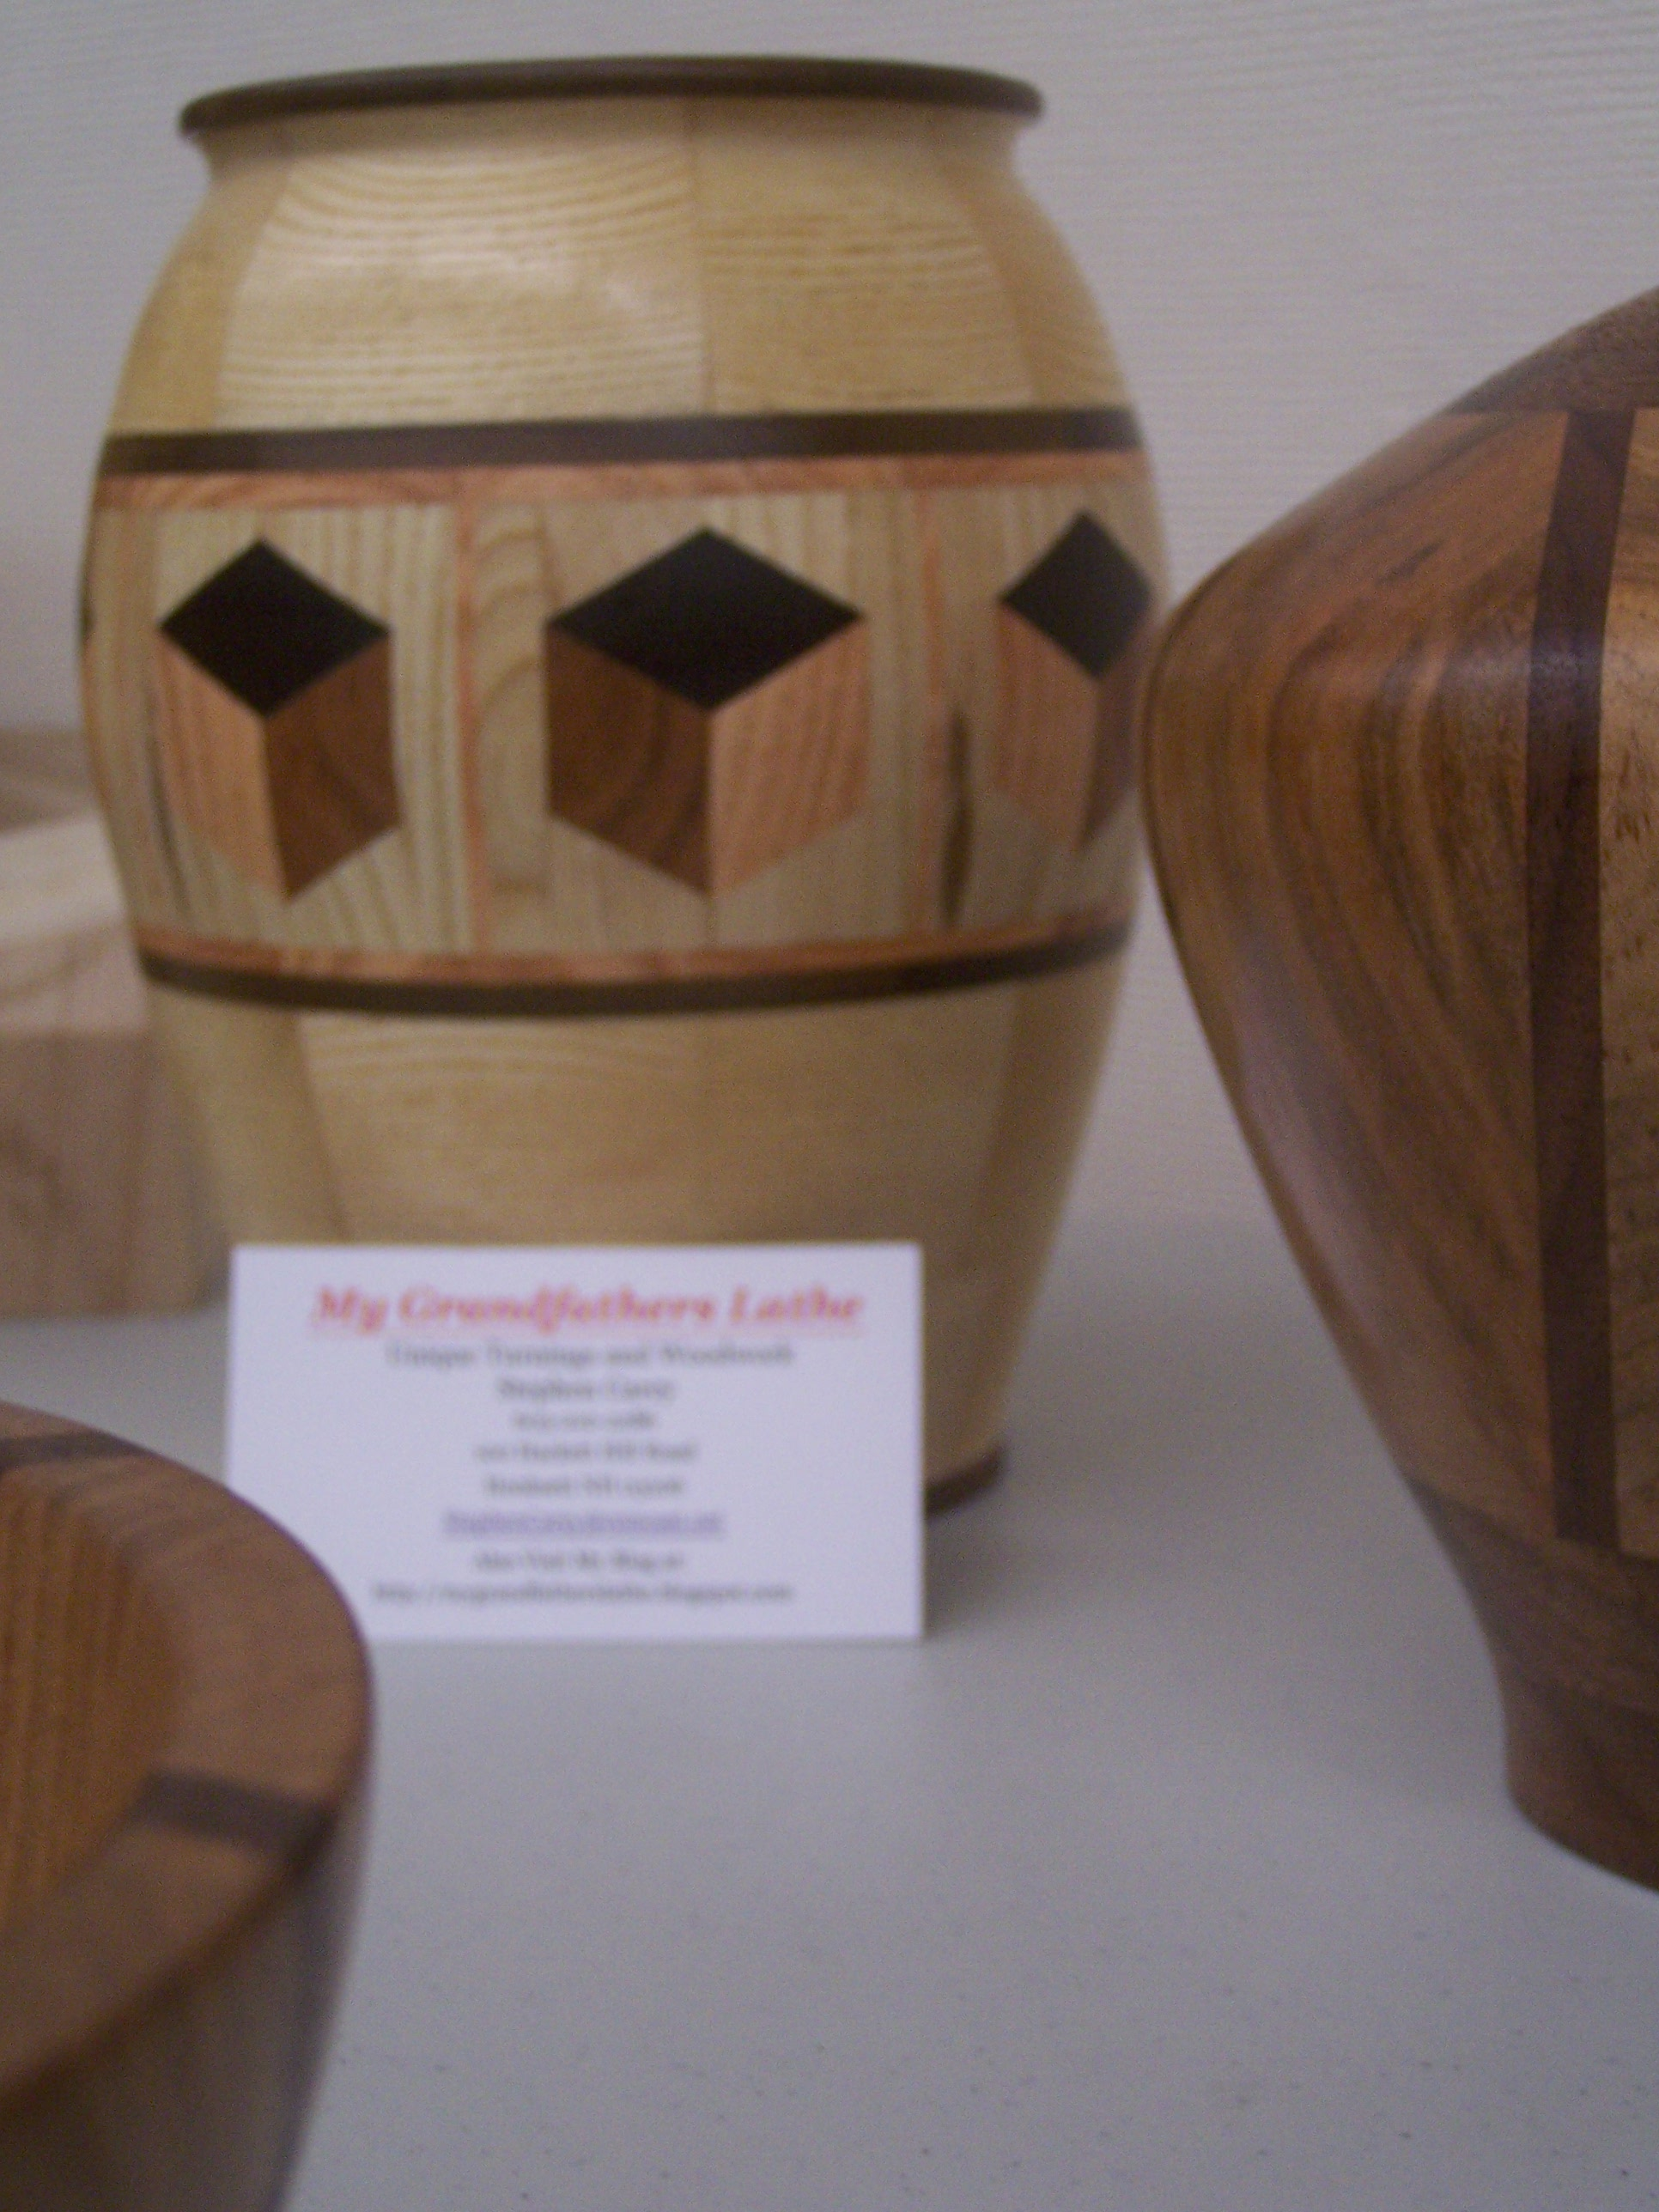 Wood art my grandfathers lathe gallery segmented wood turning ash vase with 3d highlight ring of tumbling block design reviewsmspy